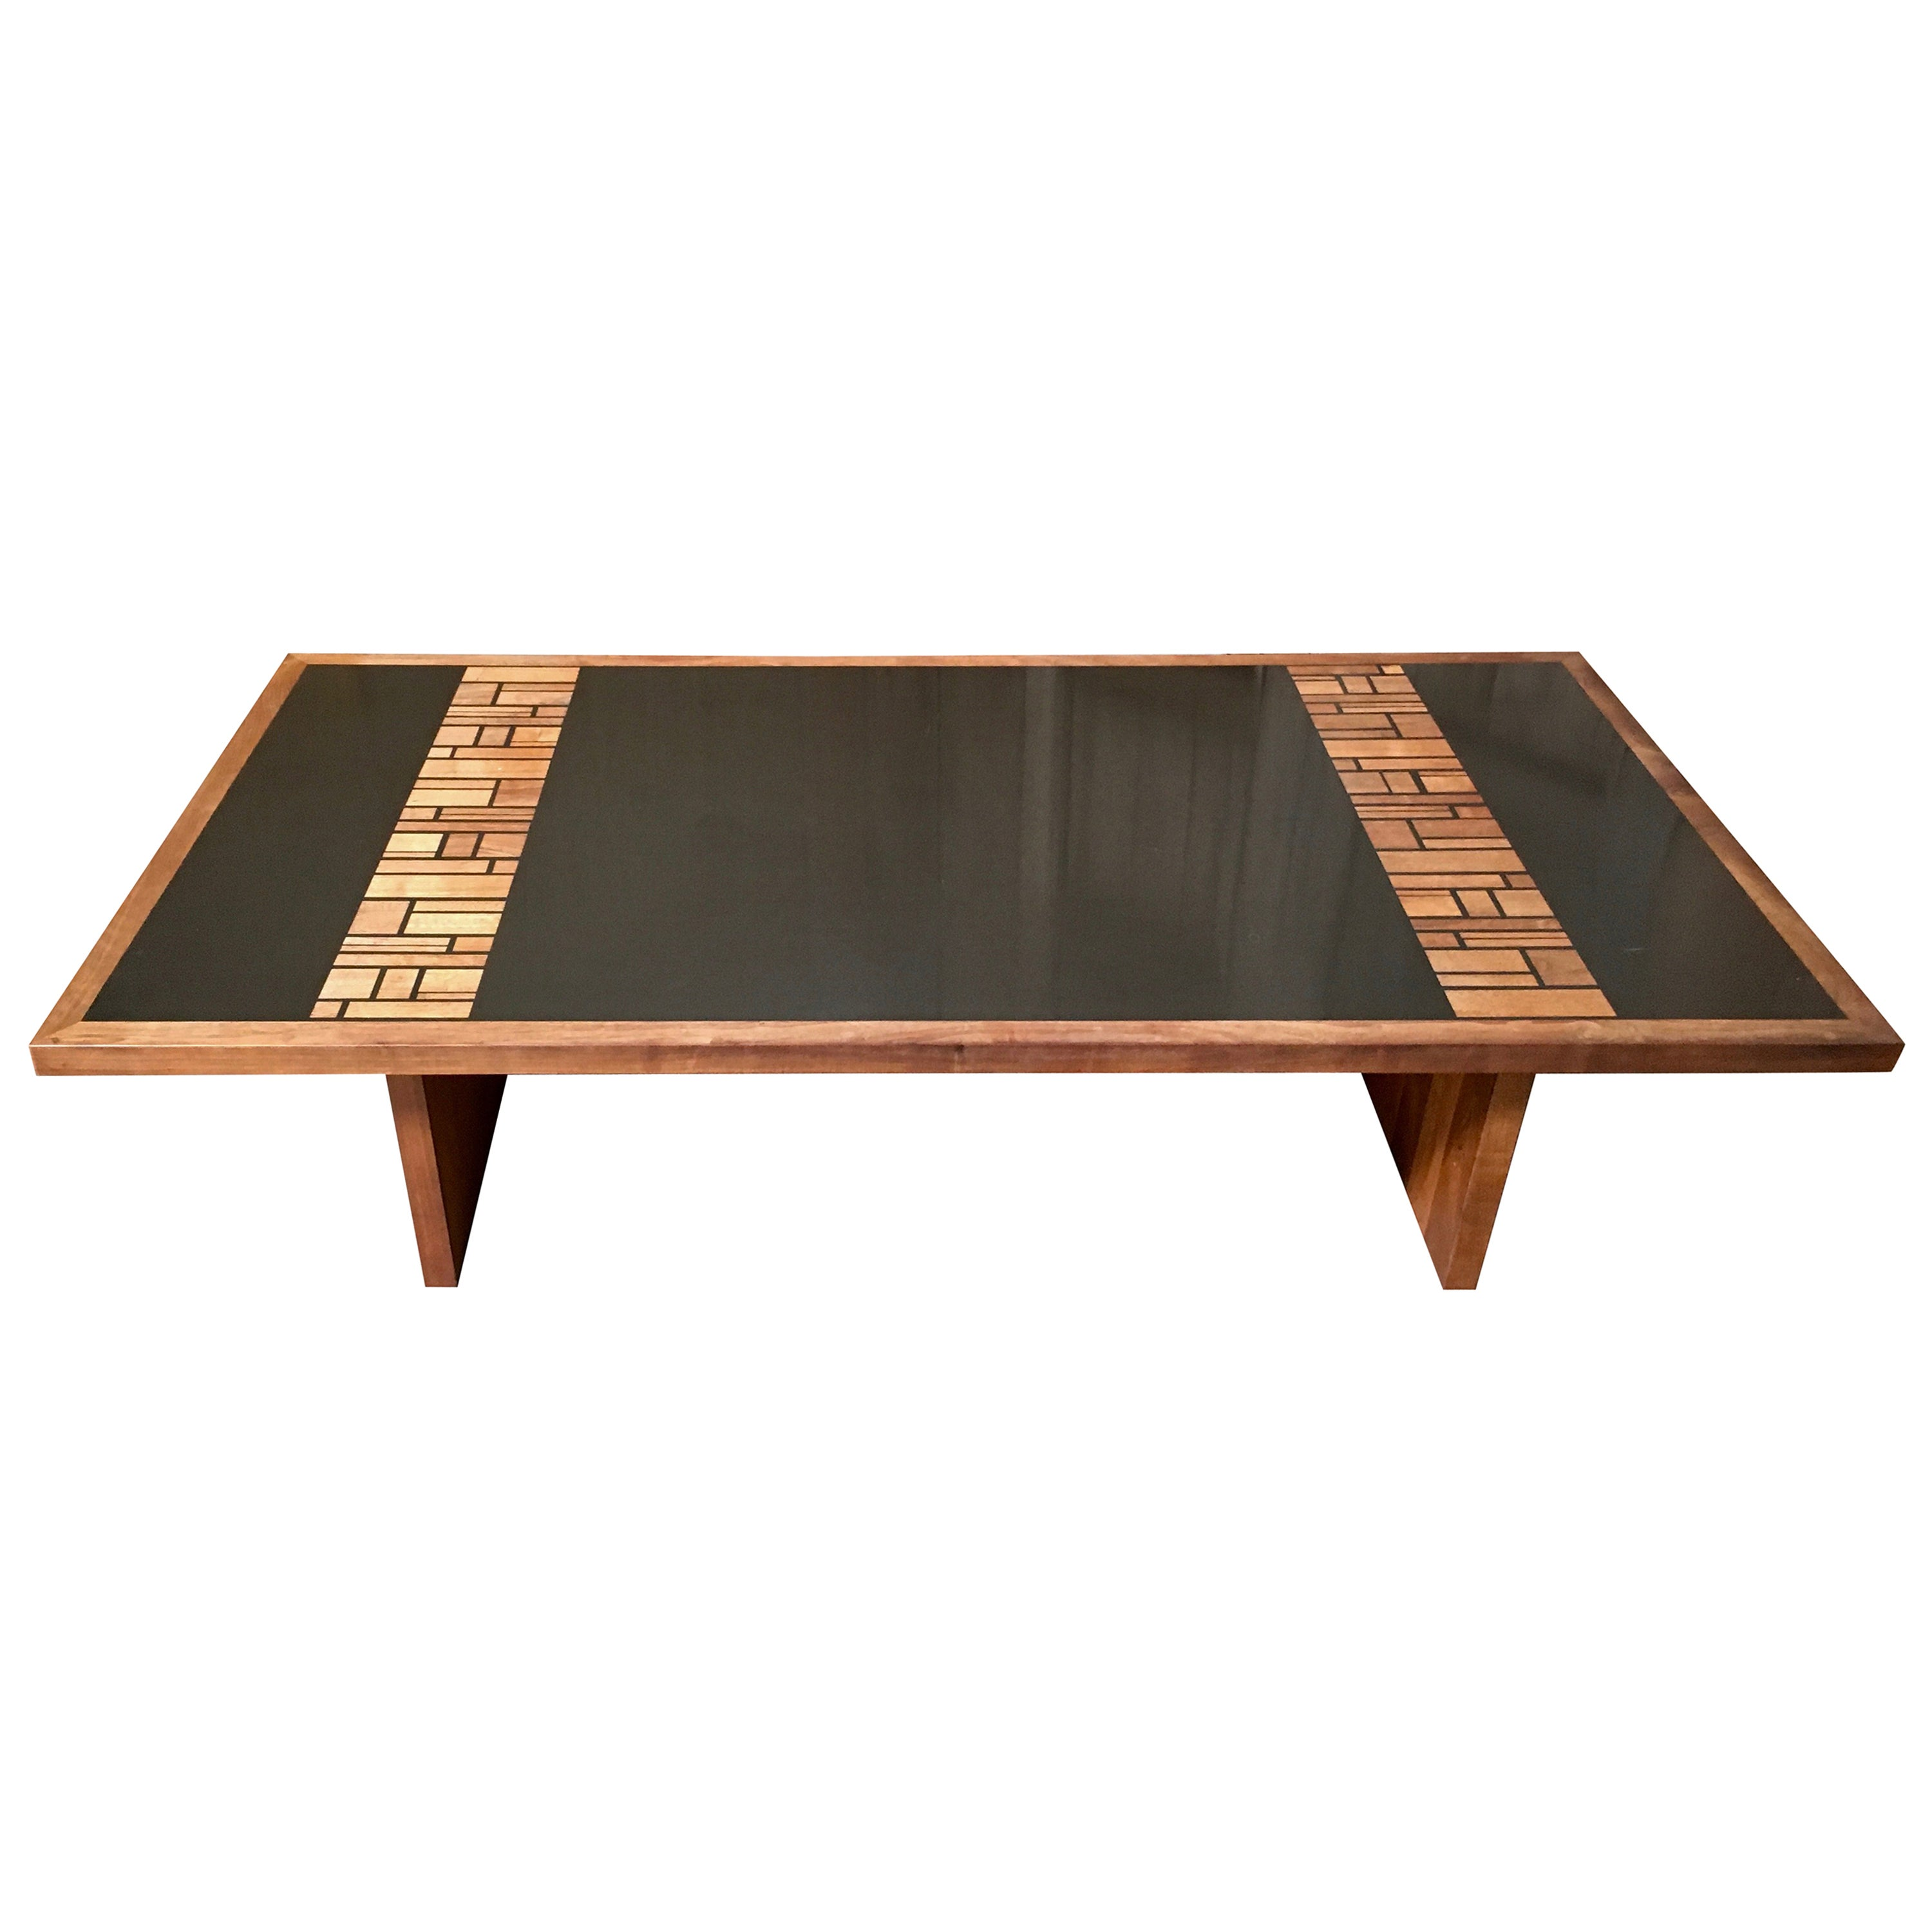 California modern coffee table by frank rohloff for sale at 1stdibs